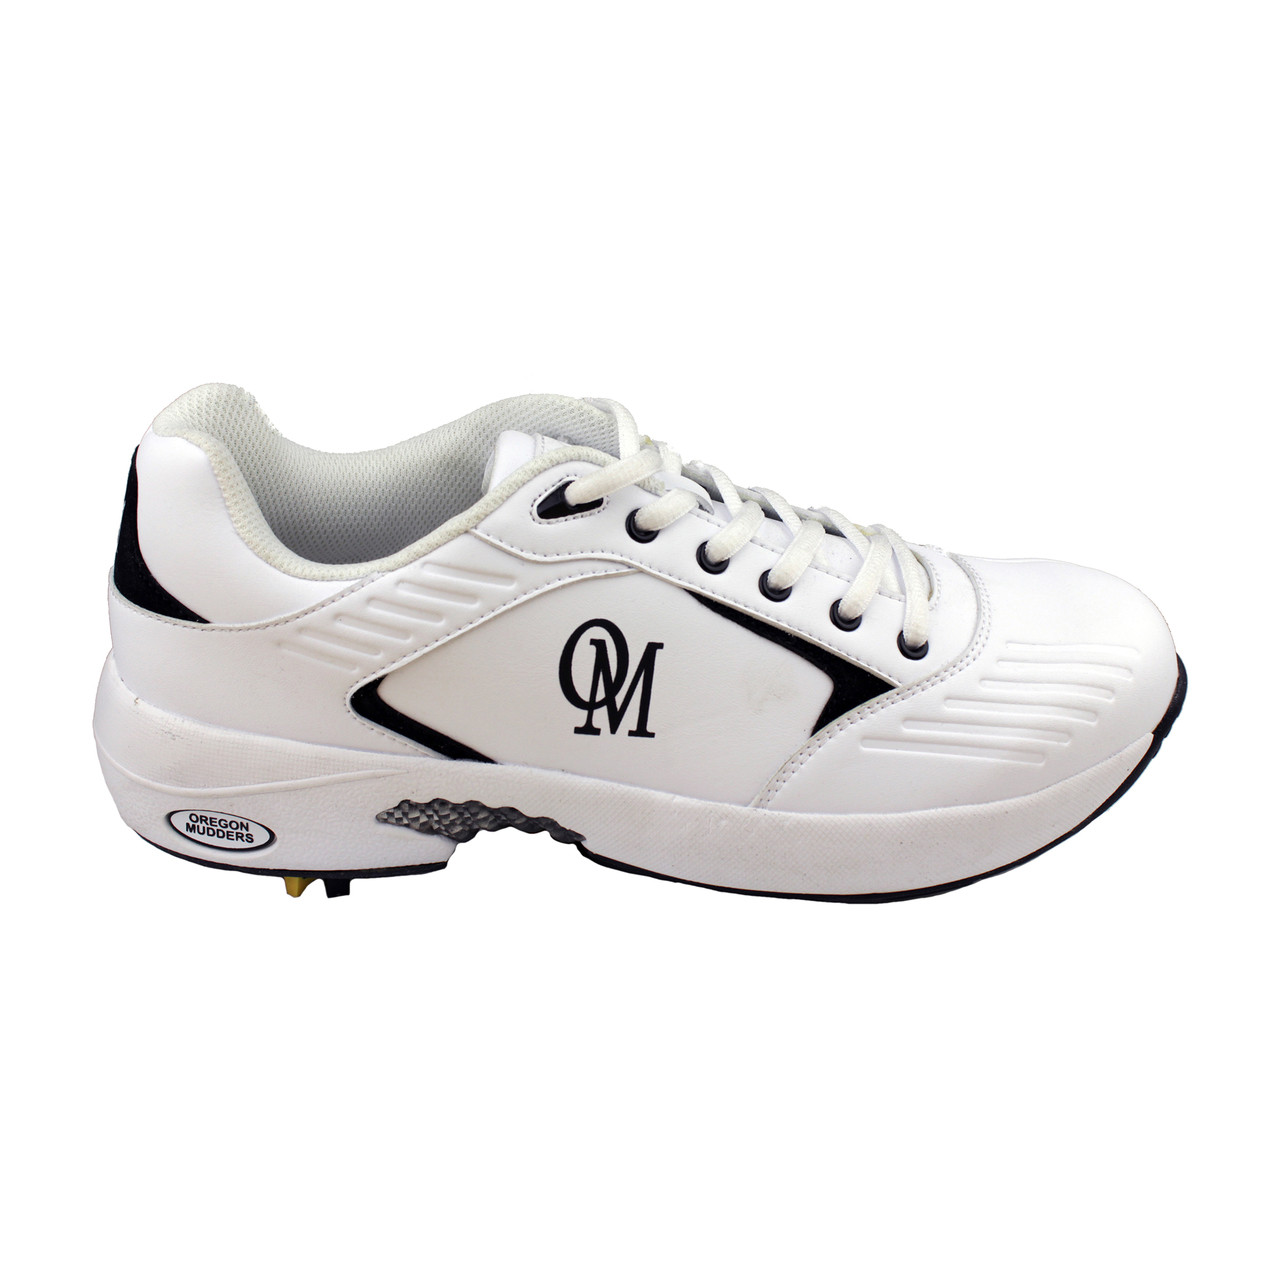 Men's MCA400N Athletic Golf Shoe with Spike Sole by Oregon Mudders